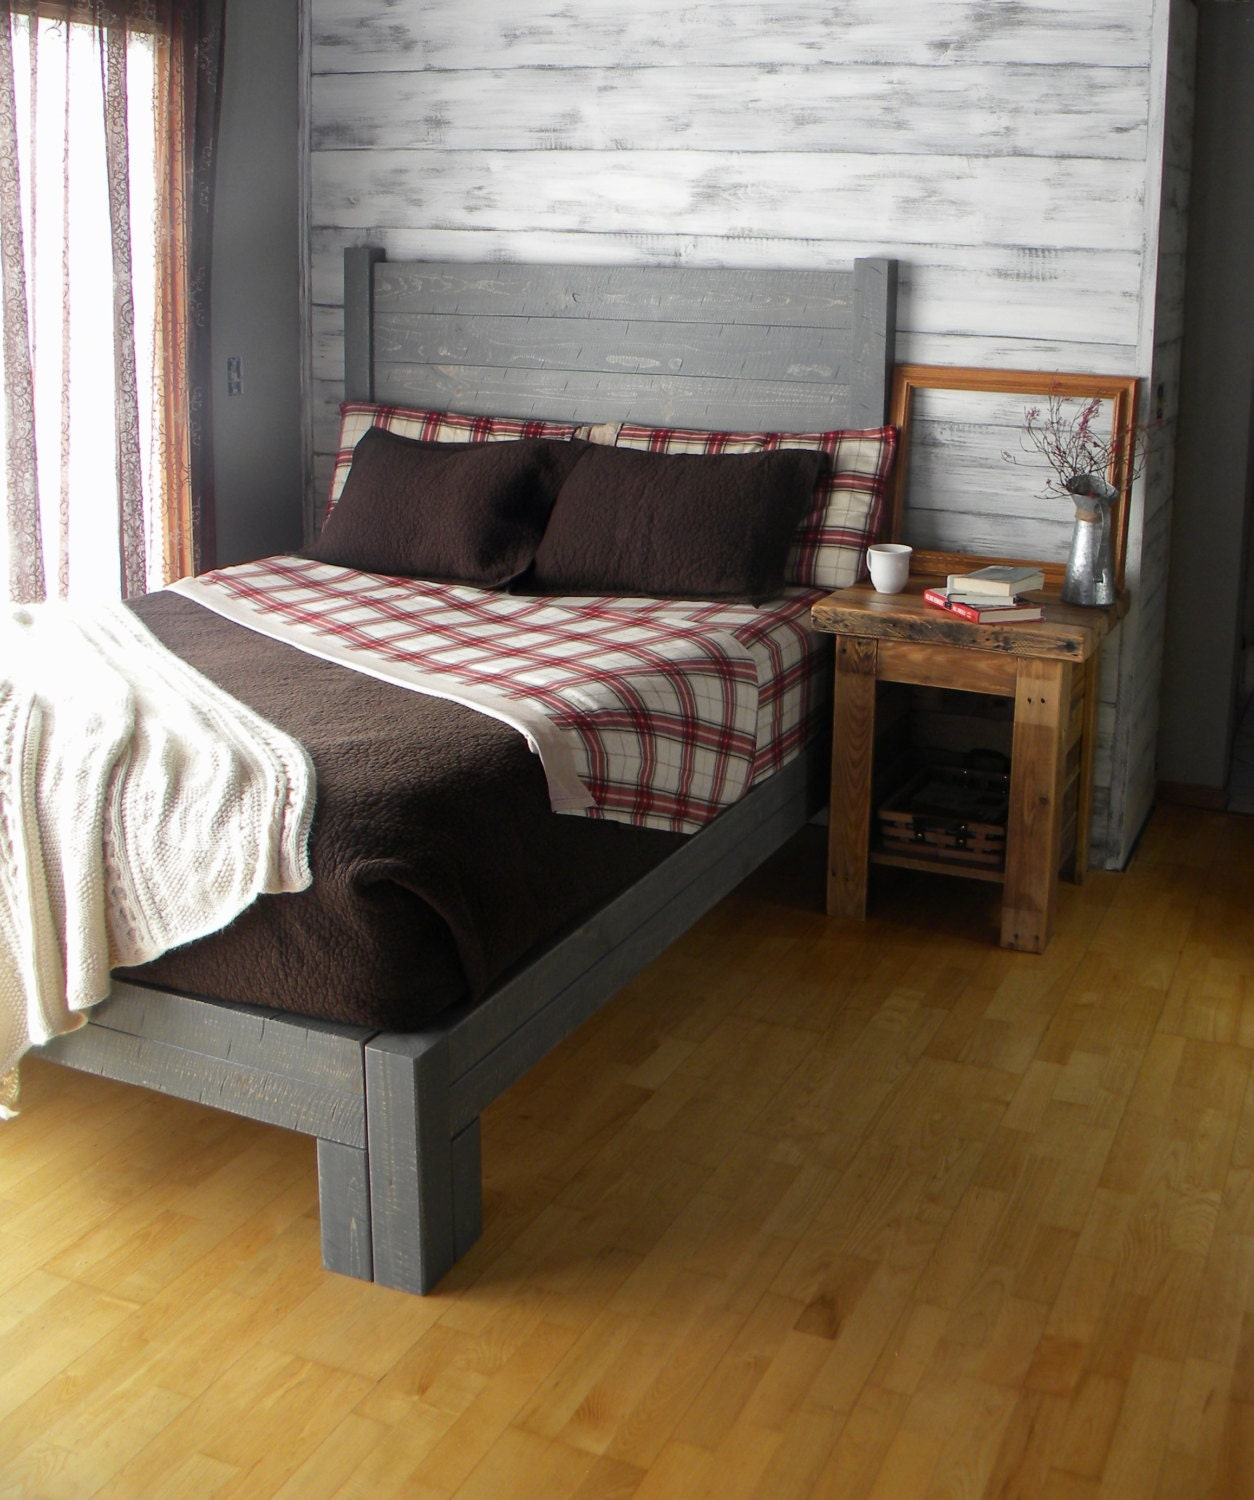 platform bed platform bed queen bed headboard bed frame beds bedroom furniture king bed rustic furniture repurposed reclaimed